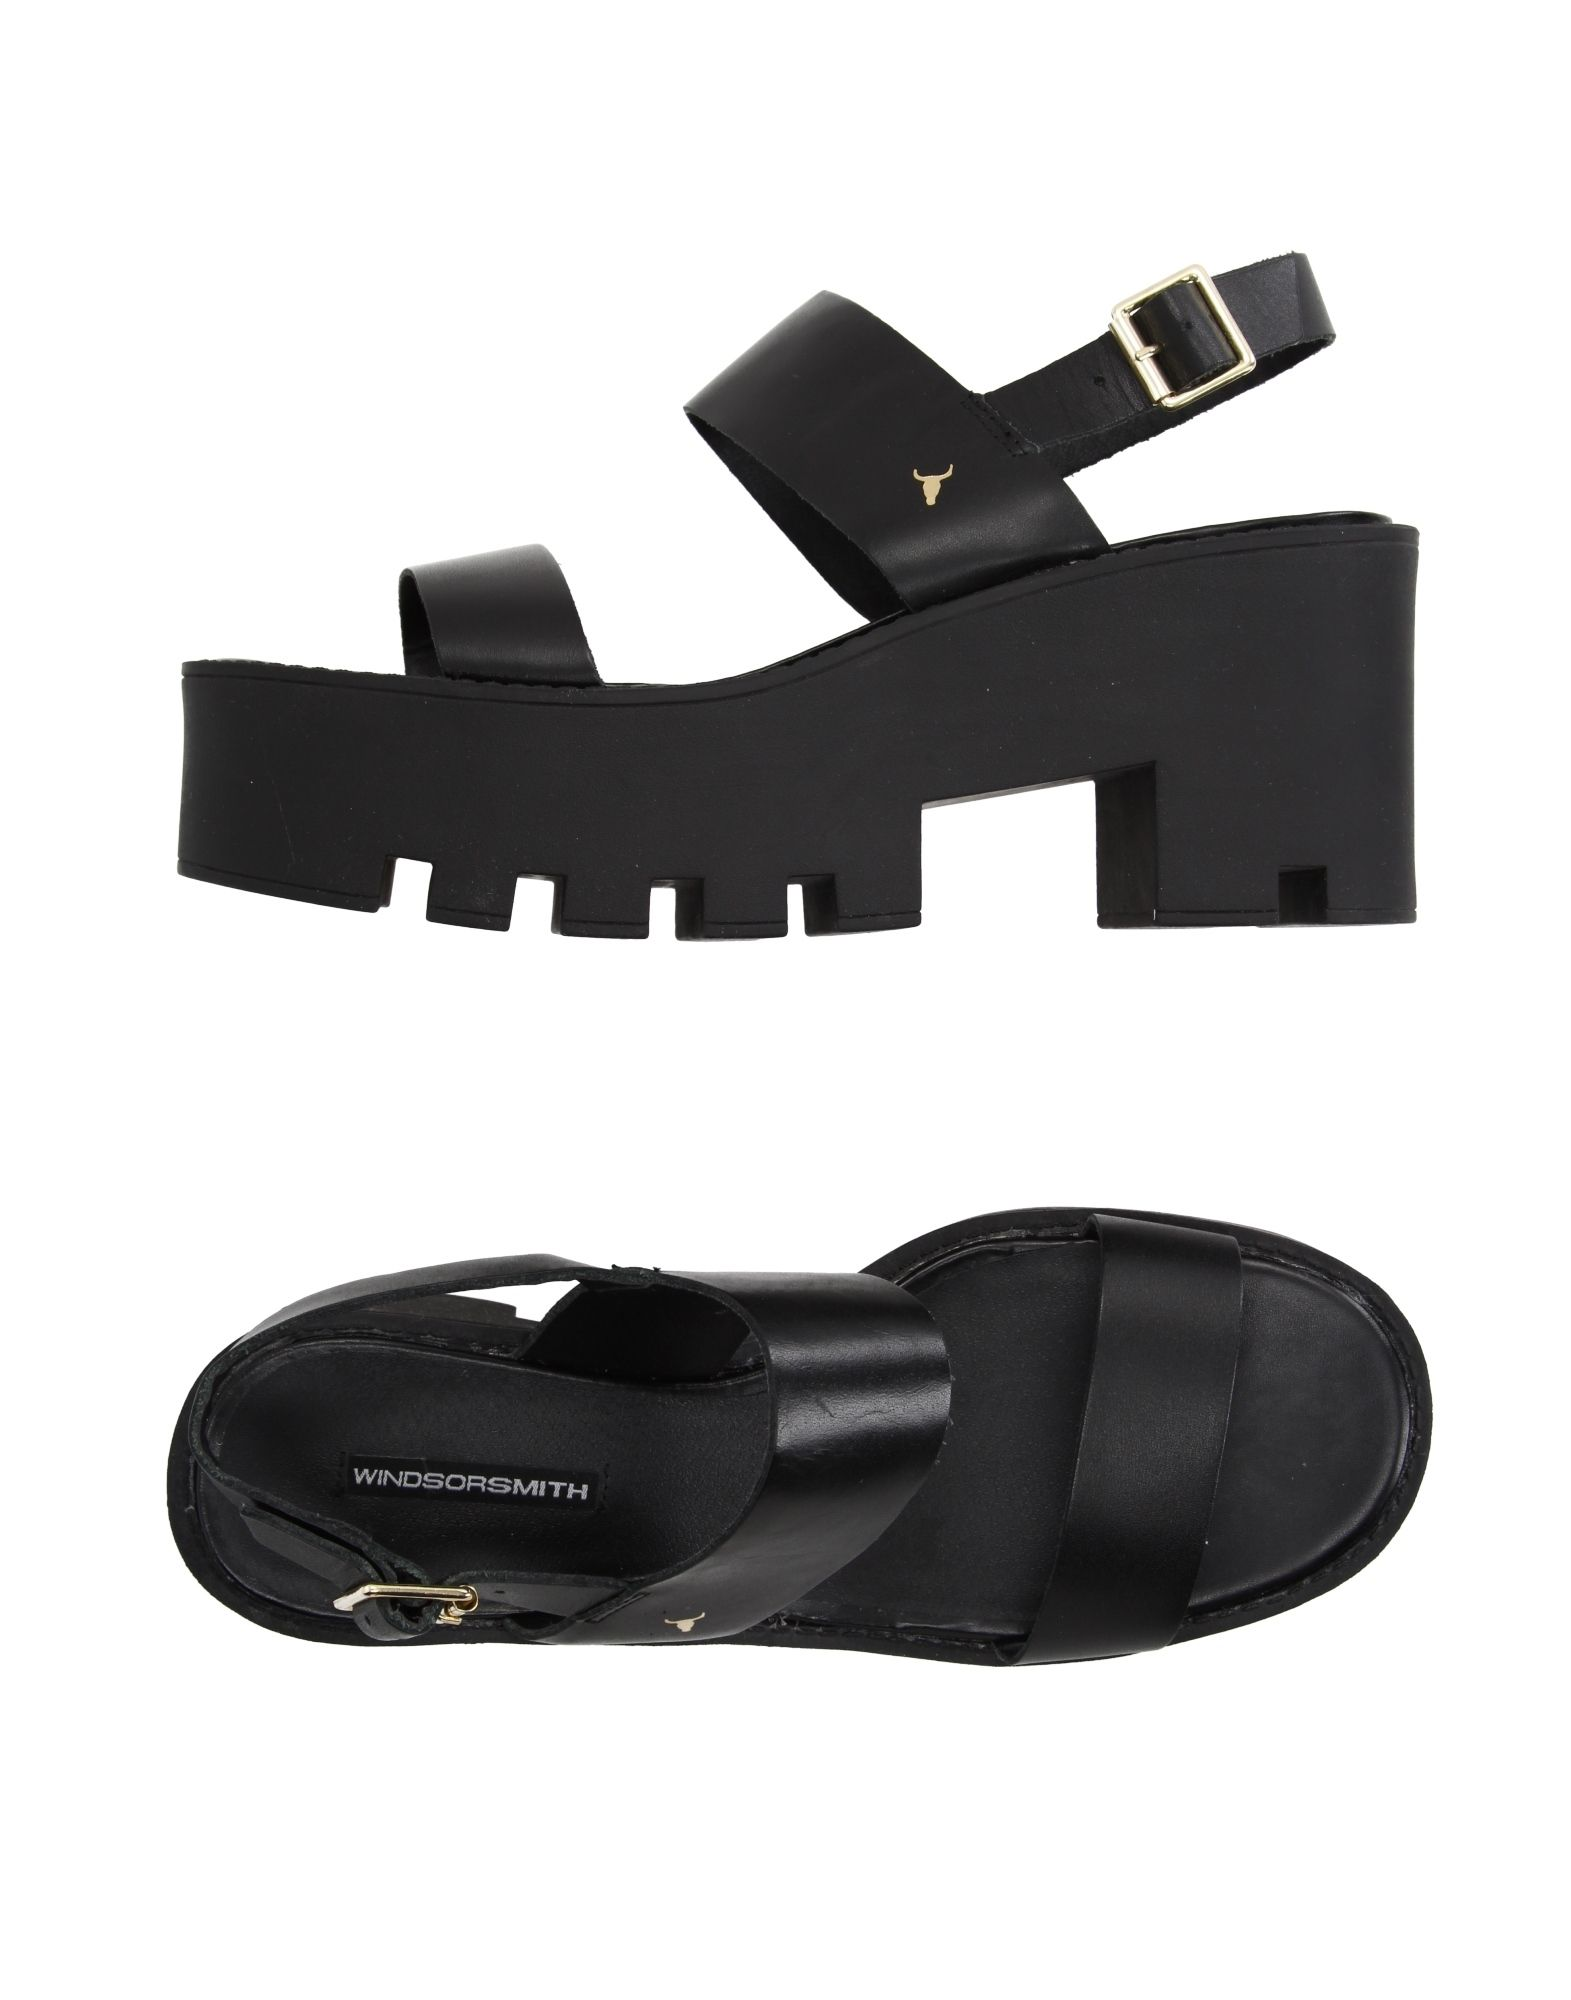 competitive price f0e29 46db9 WINDSOR SMITH Sandals - Footwear   YOOX.COM